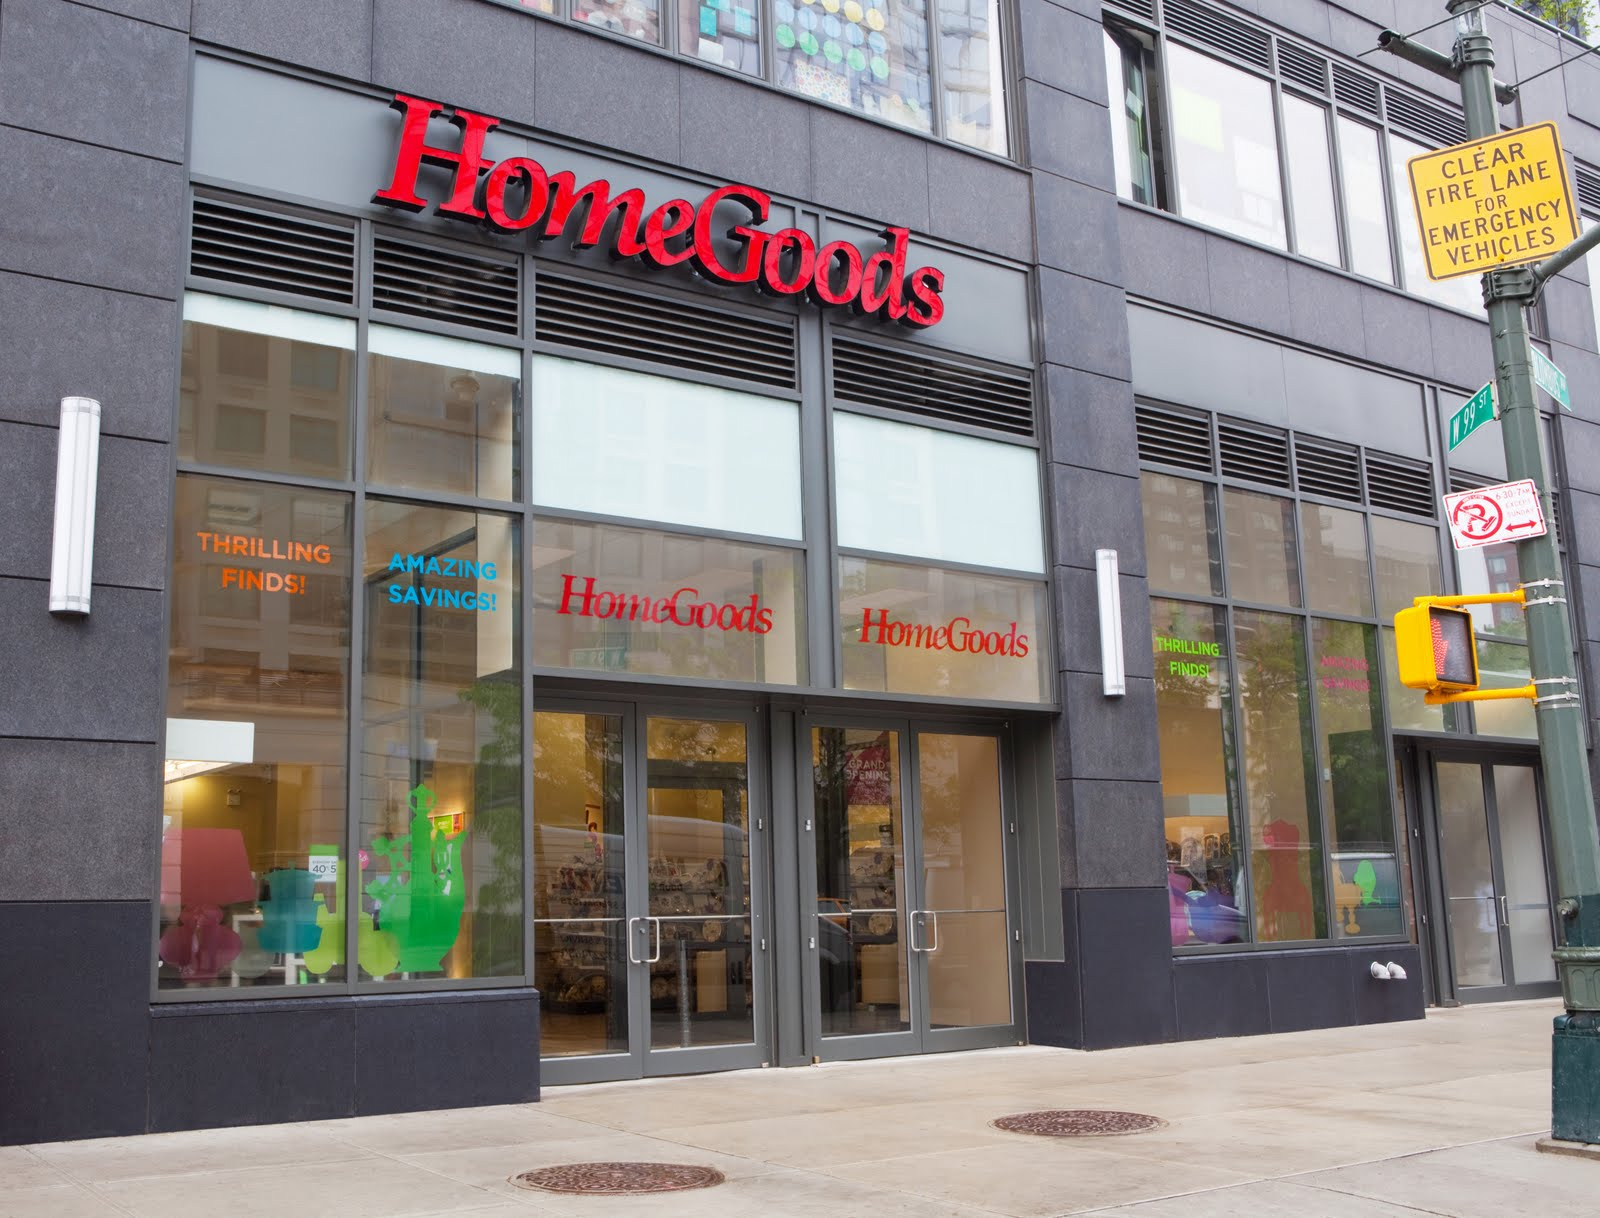 HomeGoods offers an ever-changing mix of merchandise, including: furniture, rugs, lighting, soft home, decorative accessories, tabletop, cookware, and much more. The HomeGoods shopping experience complements its sister retail banner, Homesense, with differentiated departments like .